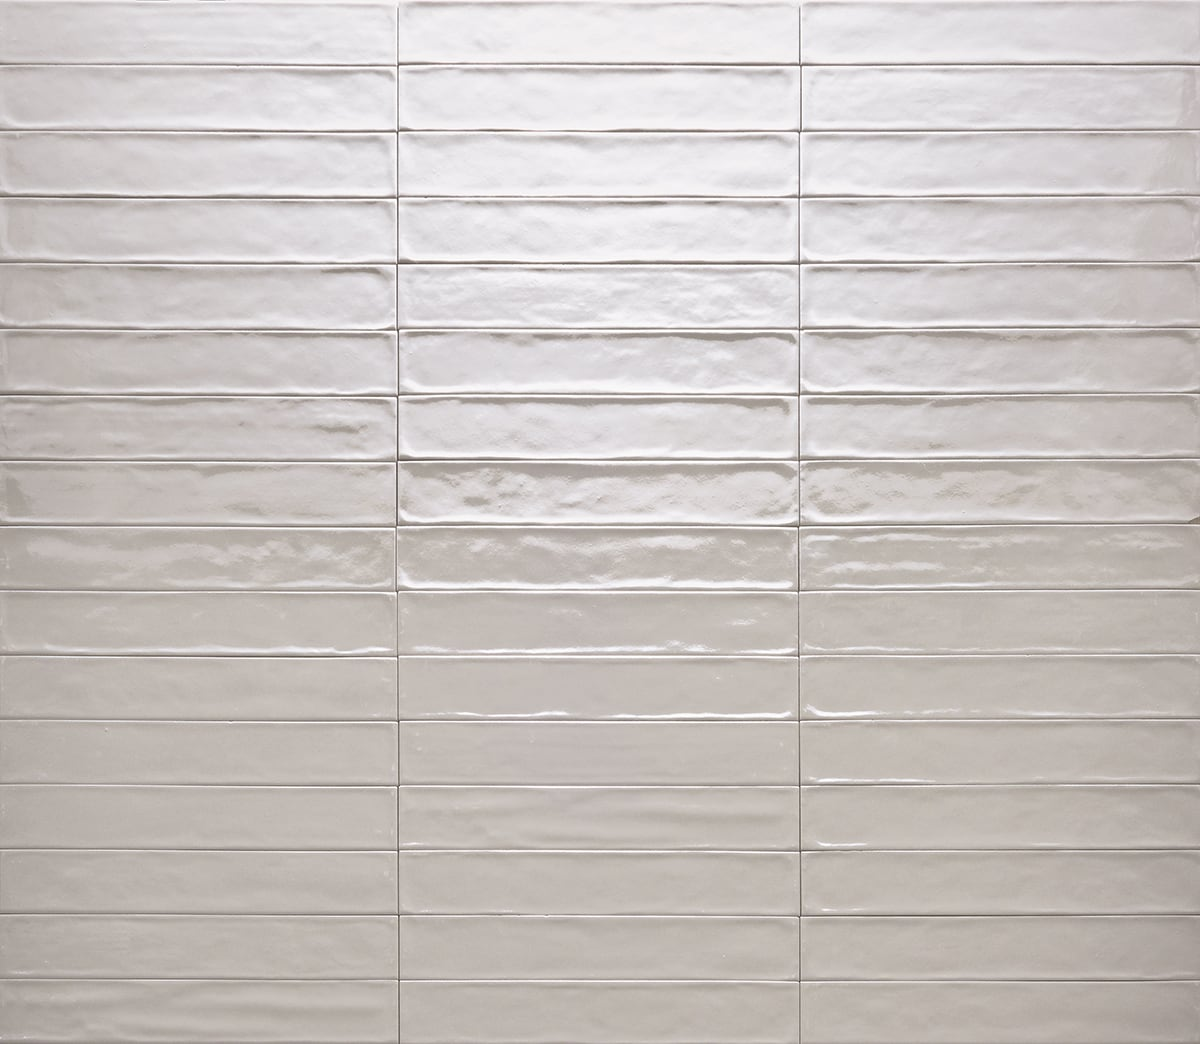 Rondine Solid Greige 6-1x37 cm J88365-